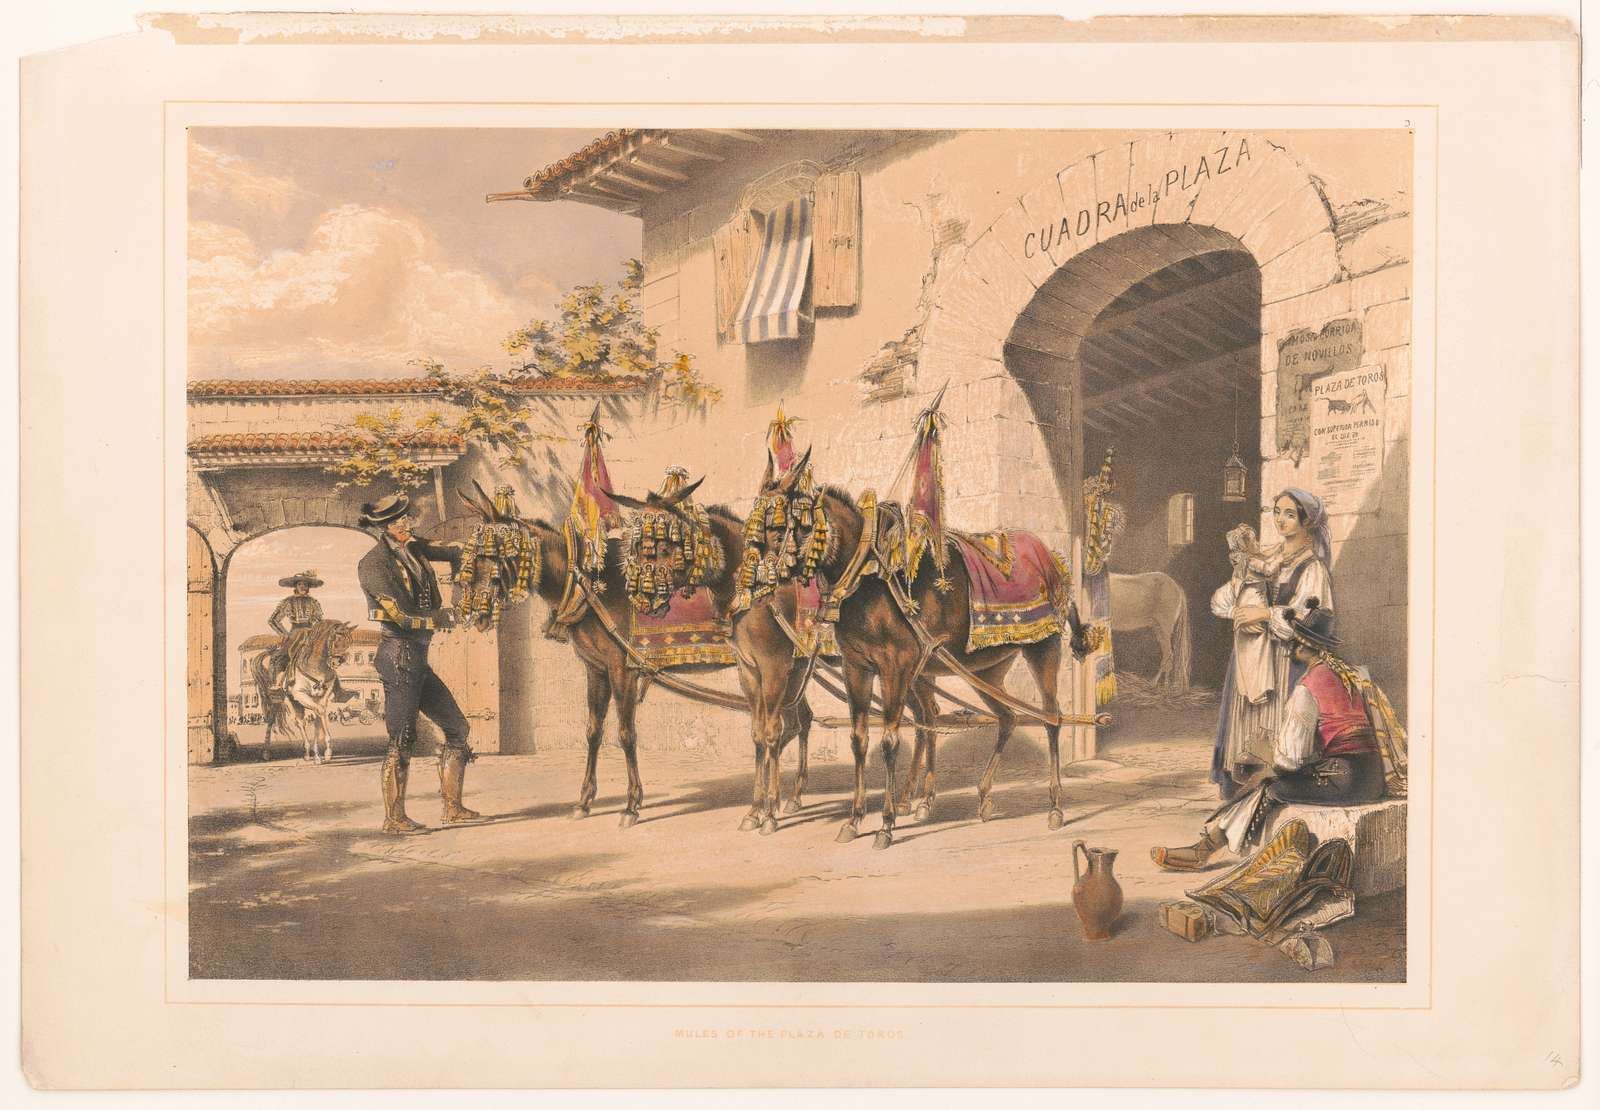 Mules of the Plaza de Toros